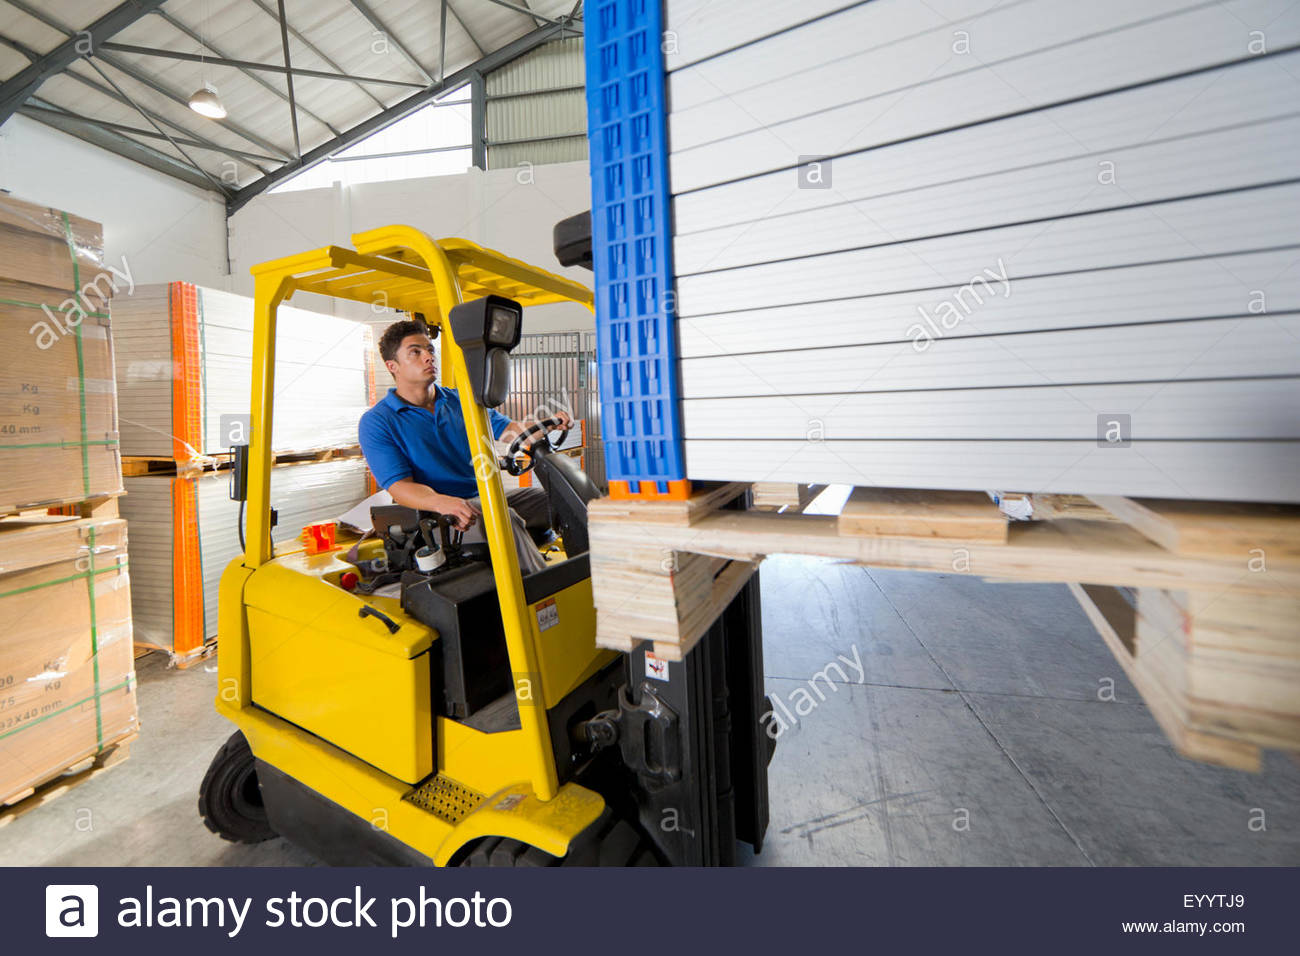 Forklift truck driver worker stacking panels in solar panel factory warehouse - Stock Image